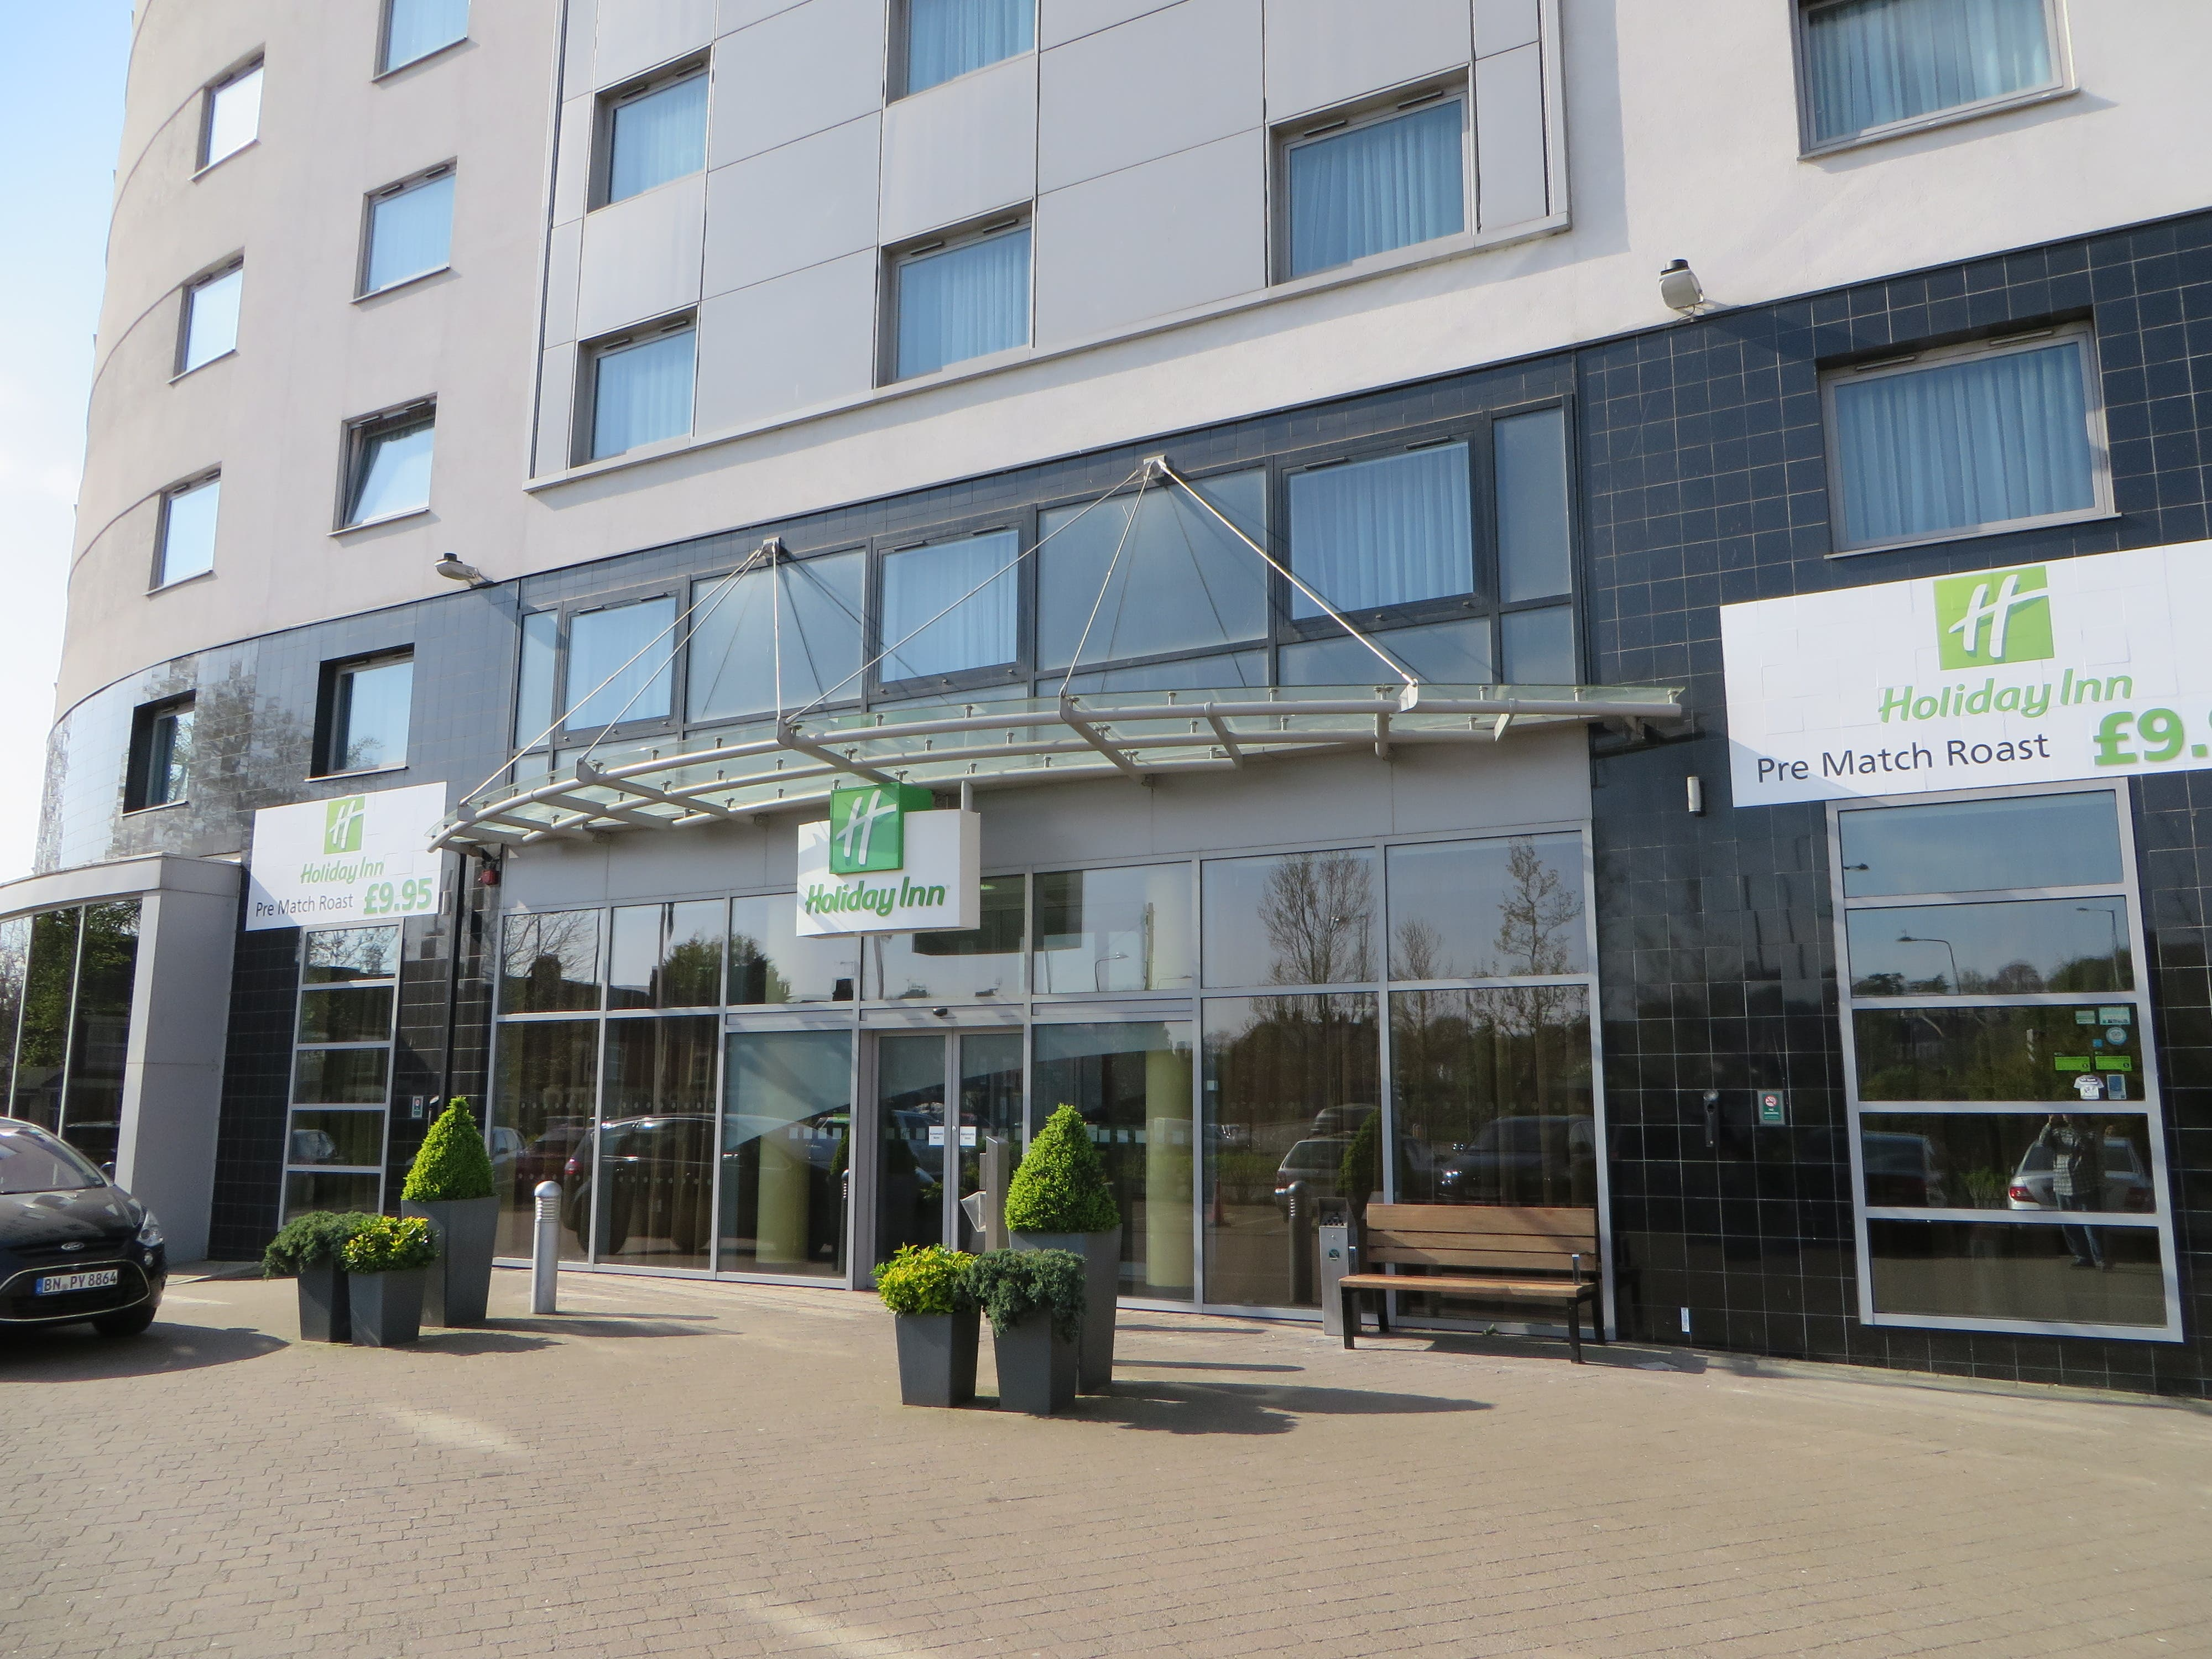 Holiday Inn, Norwich, UK